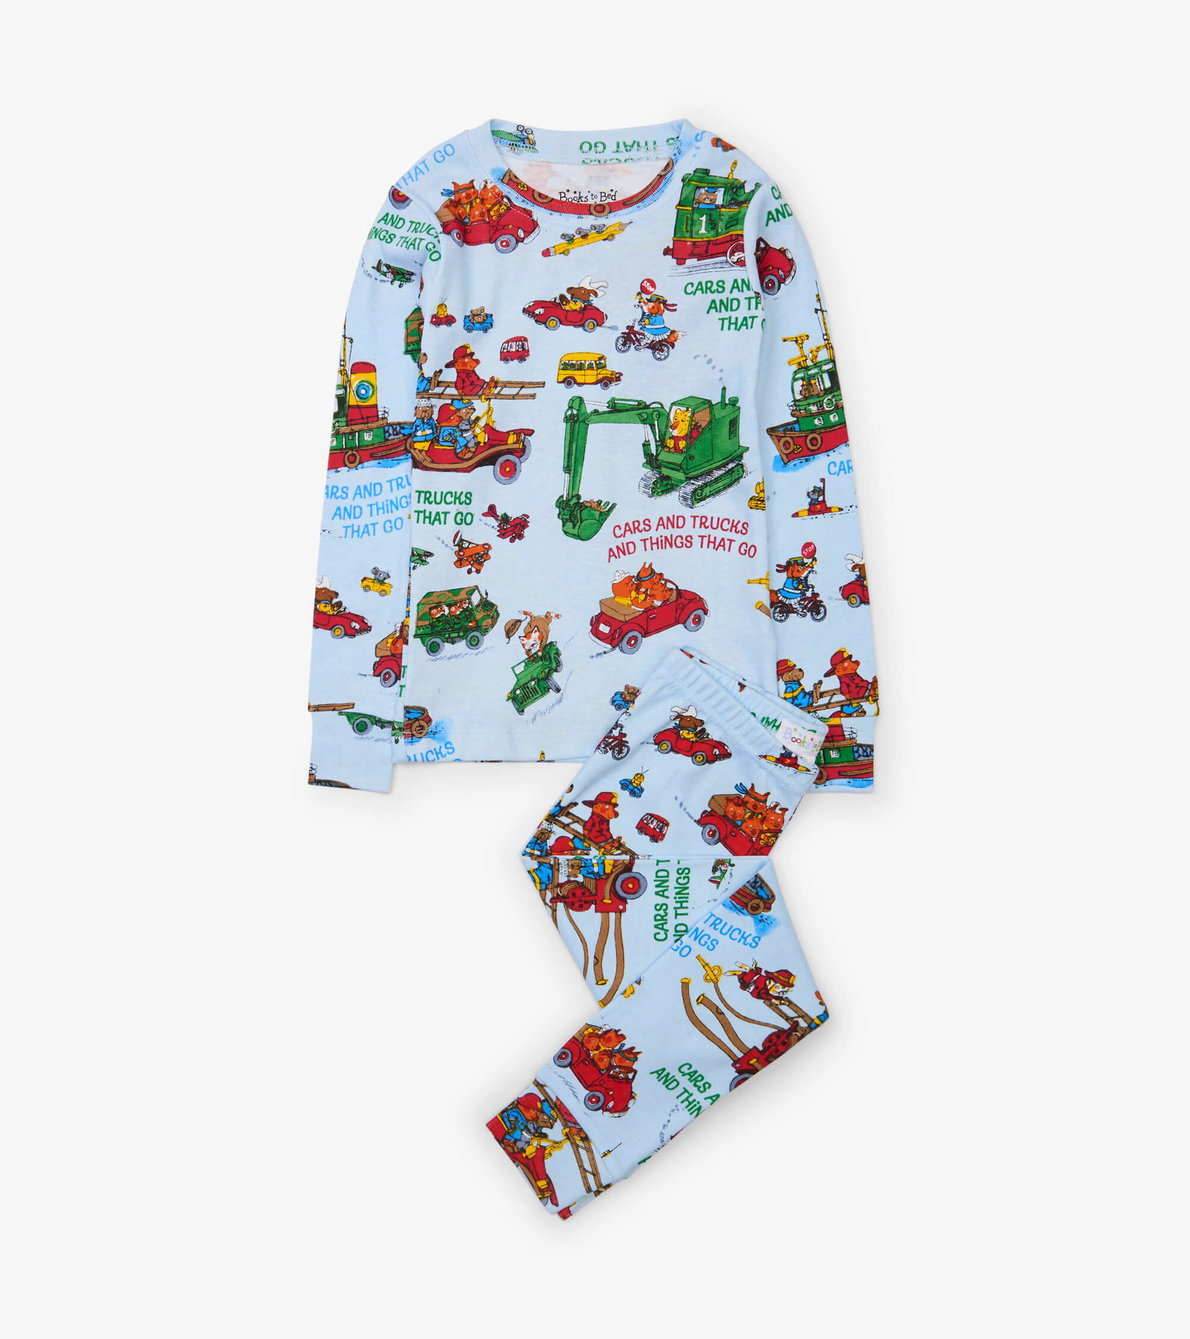 View larger image of Cars and Trucks and Things That Go Pajama Set